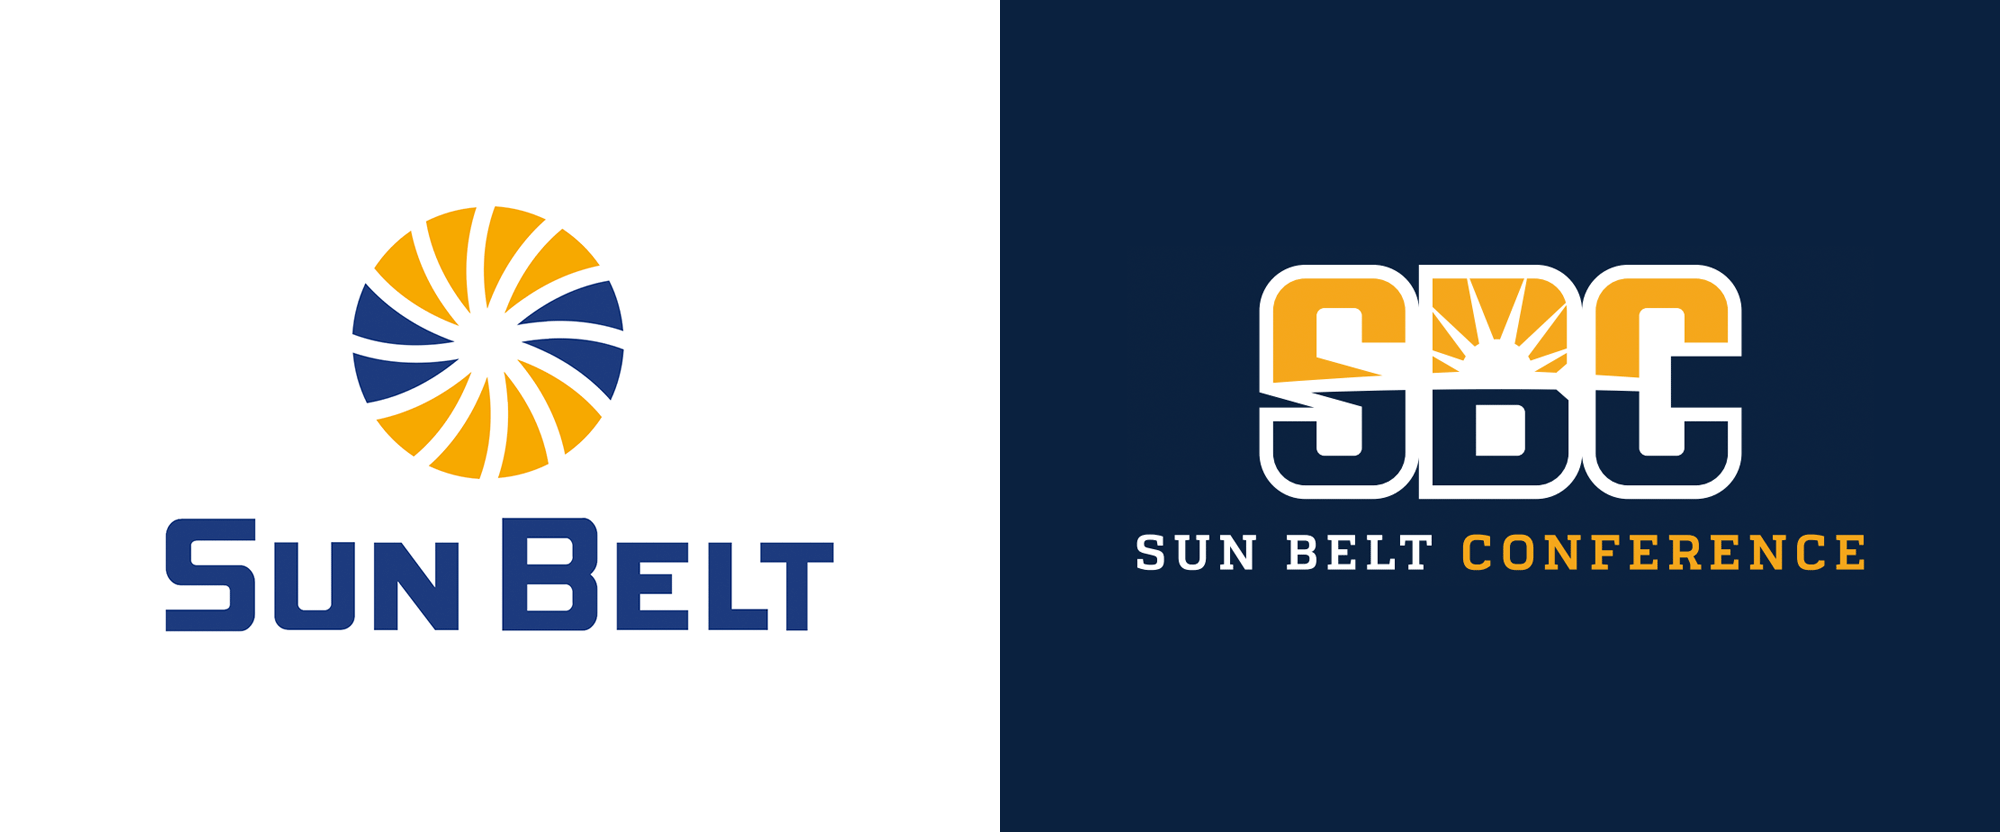 New Logo for Sun Belt Conference by Brian Gundell